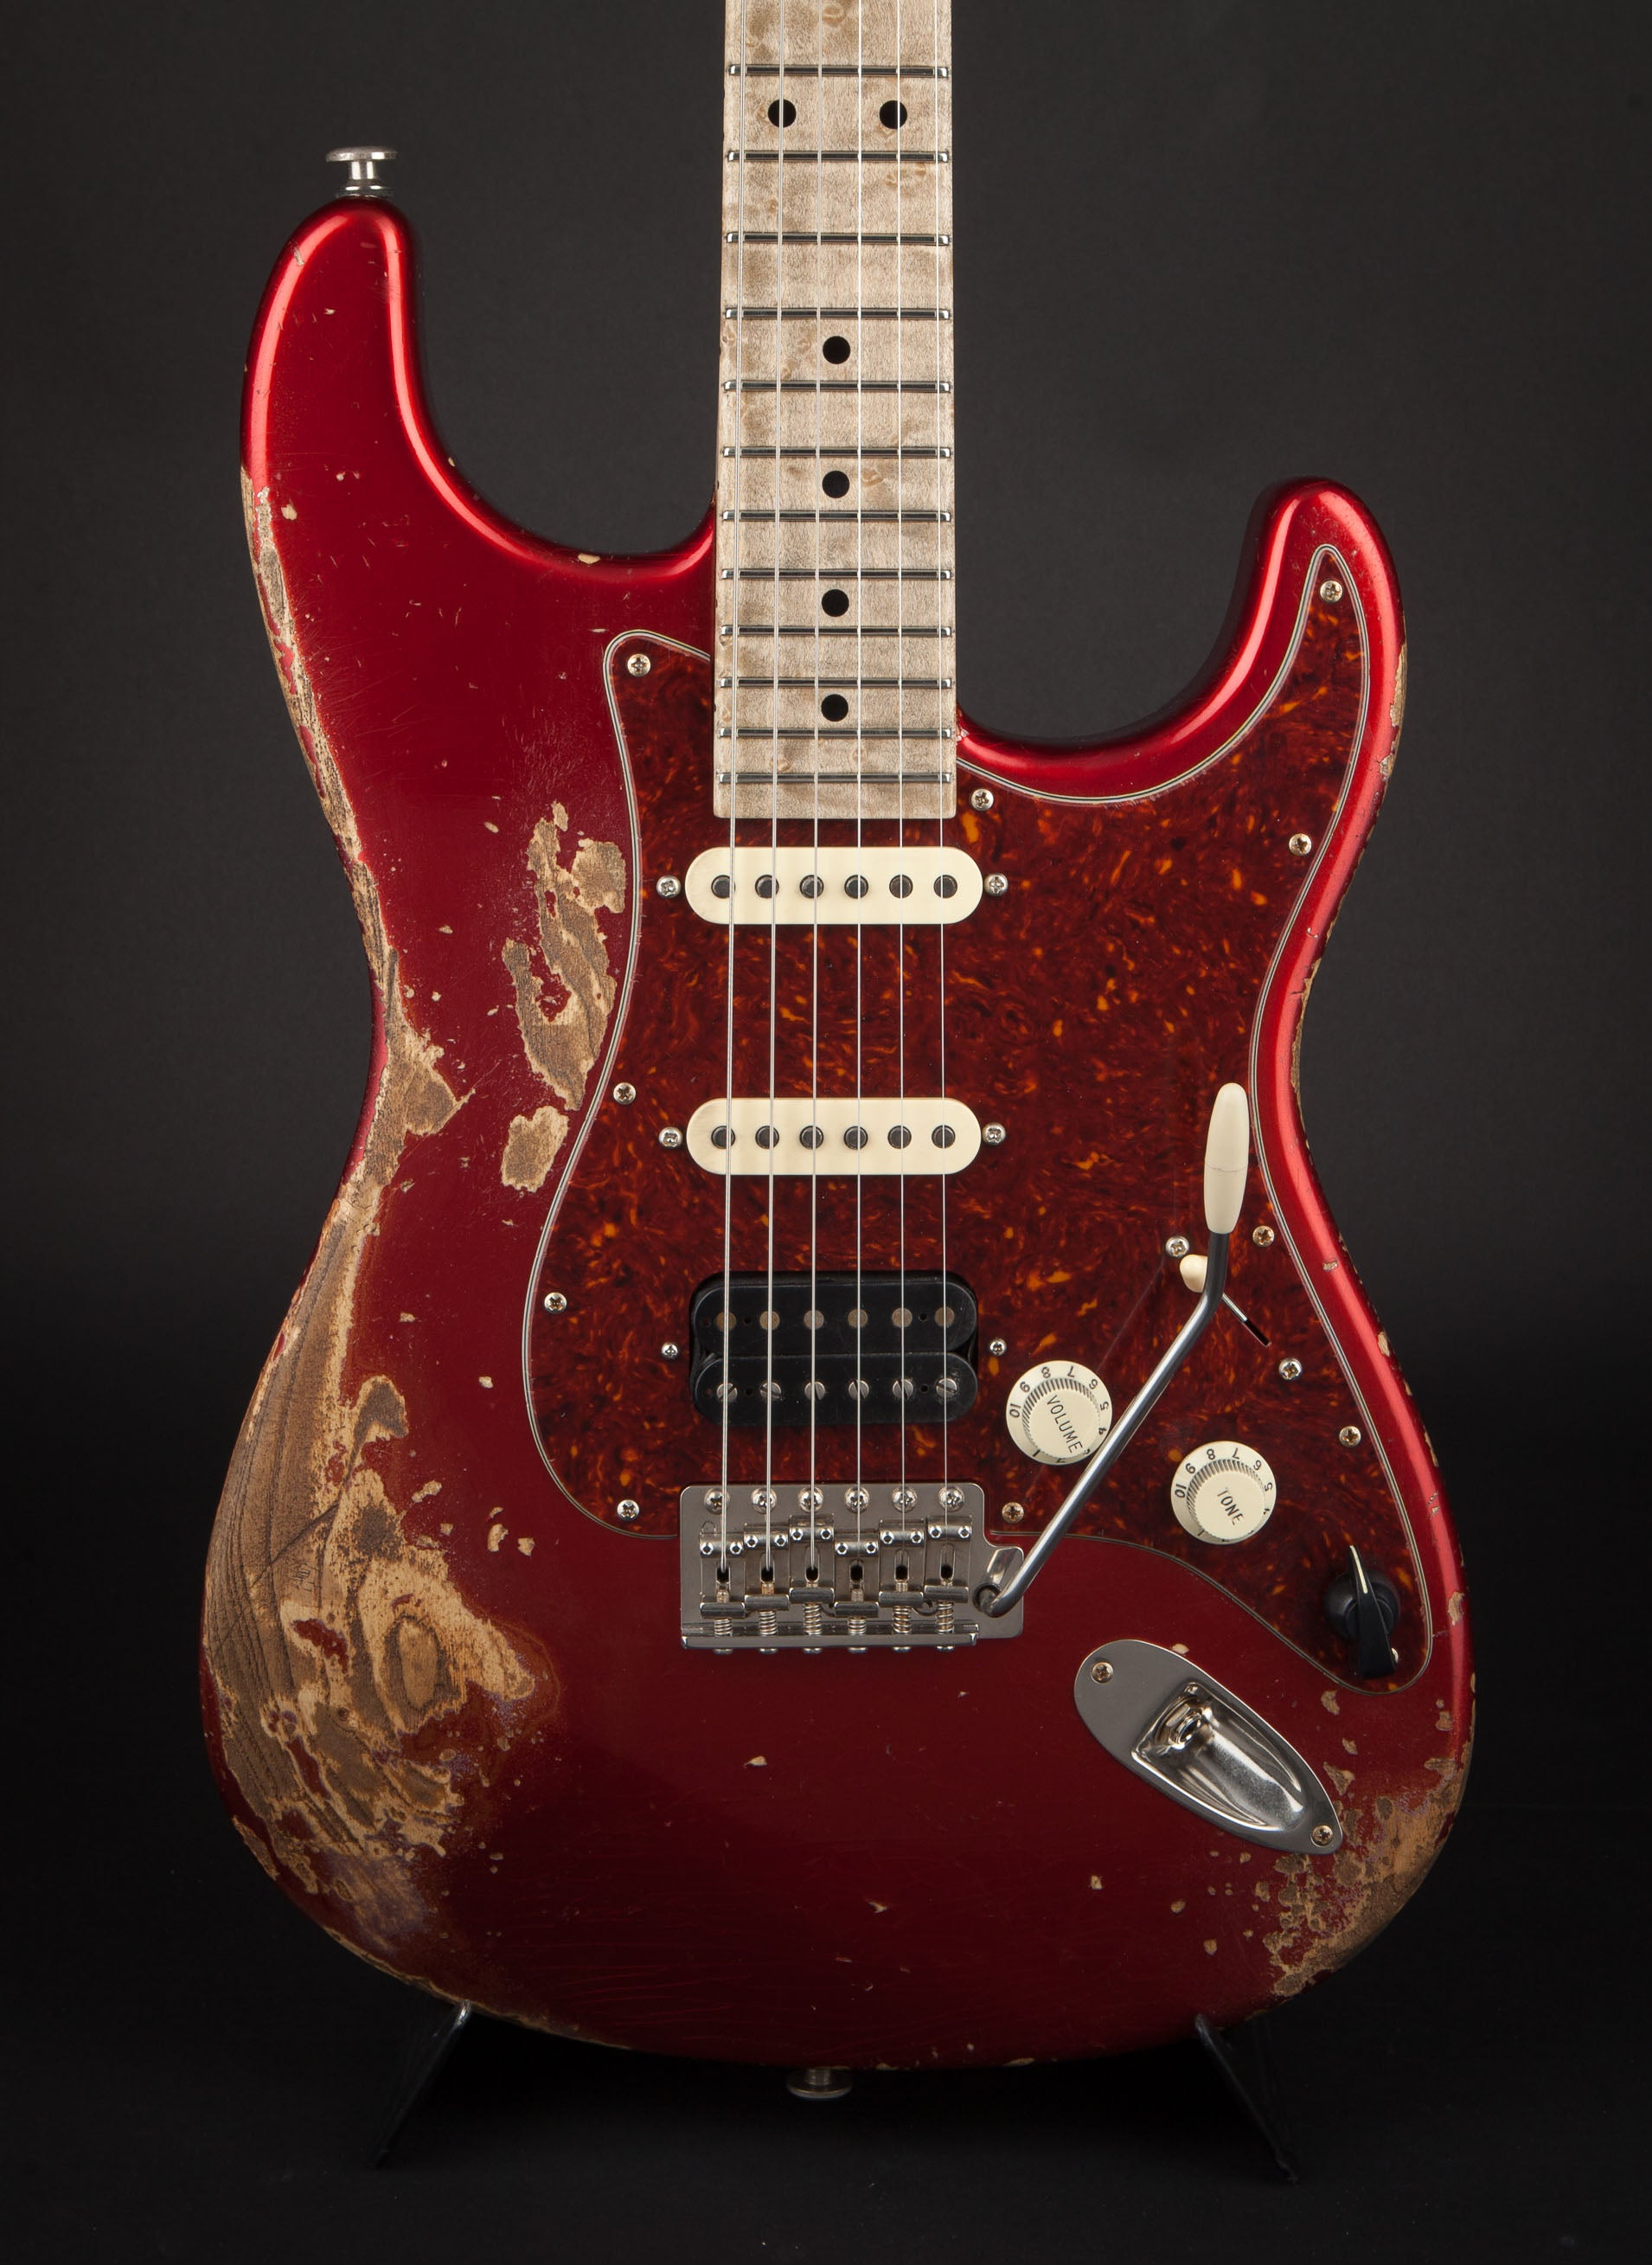 Luxxtone Guitars: Choppa S Candy Apple Red #381